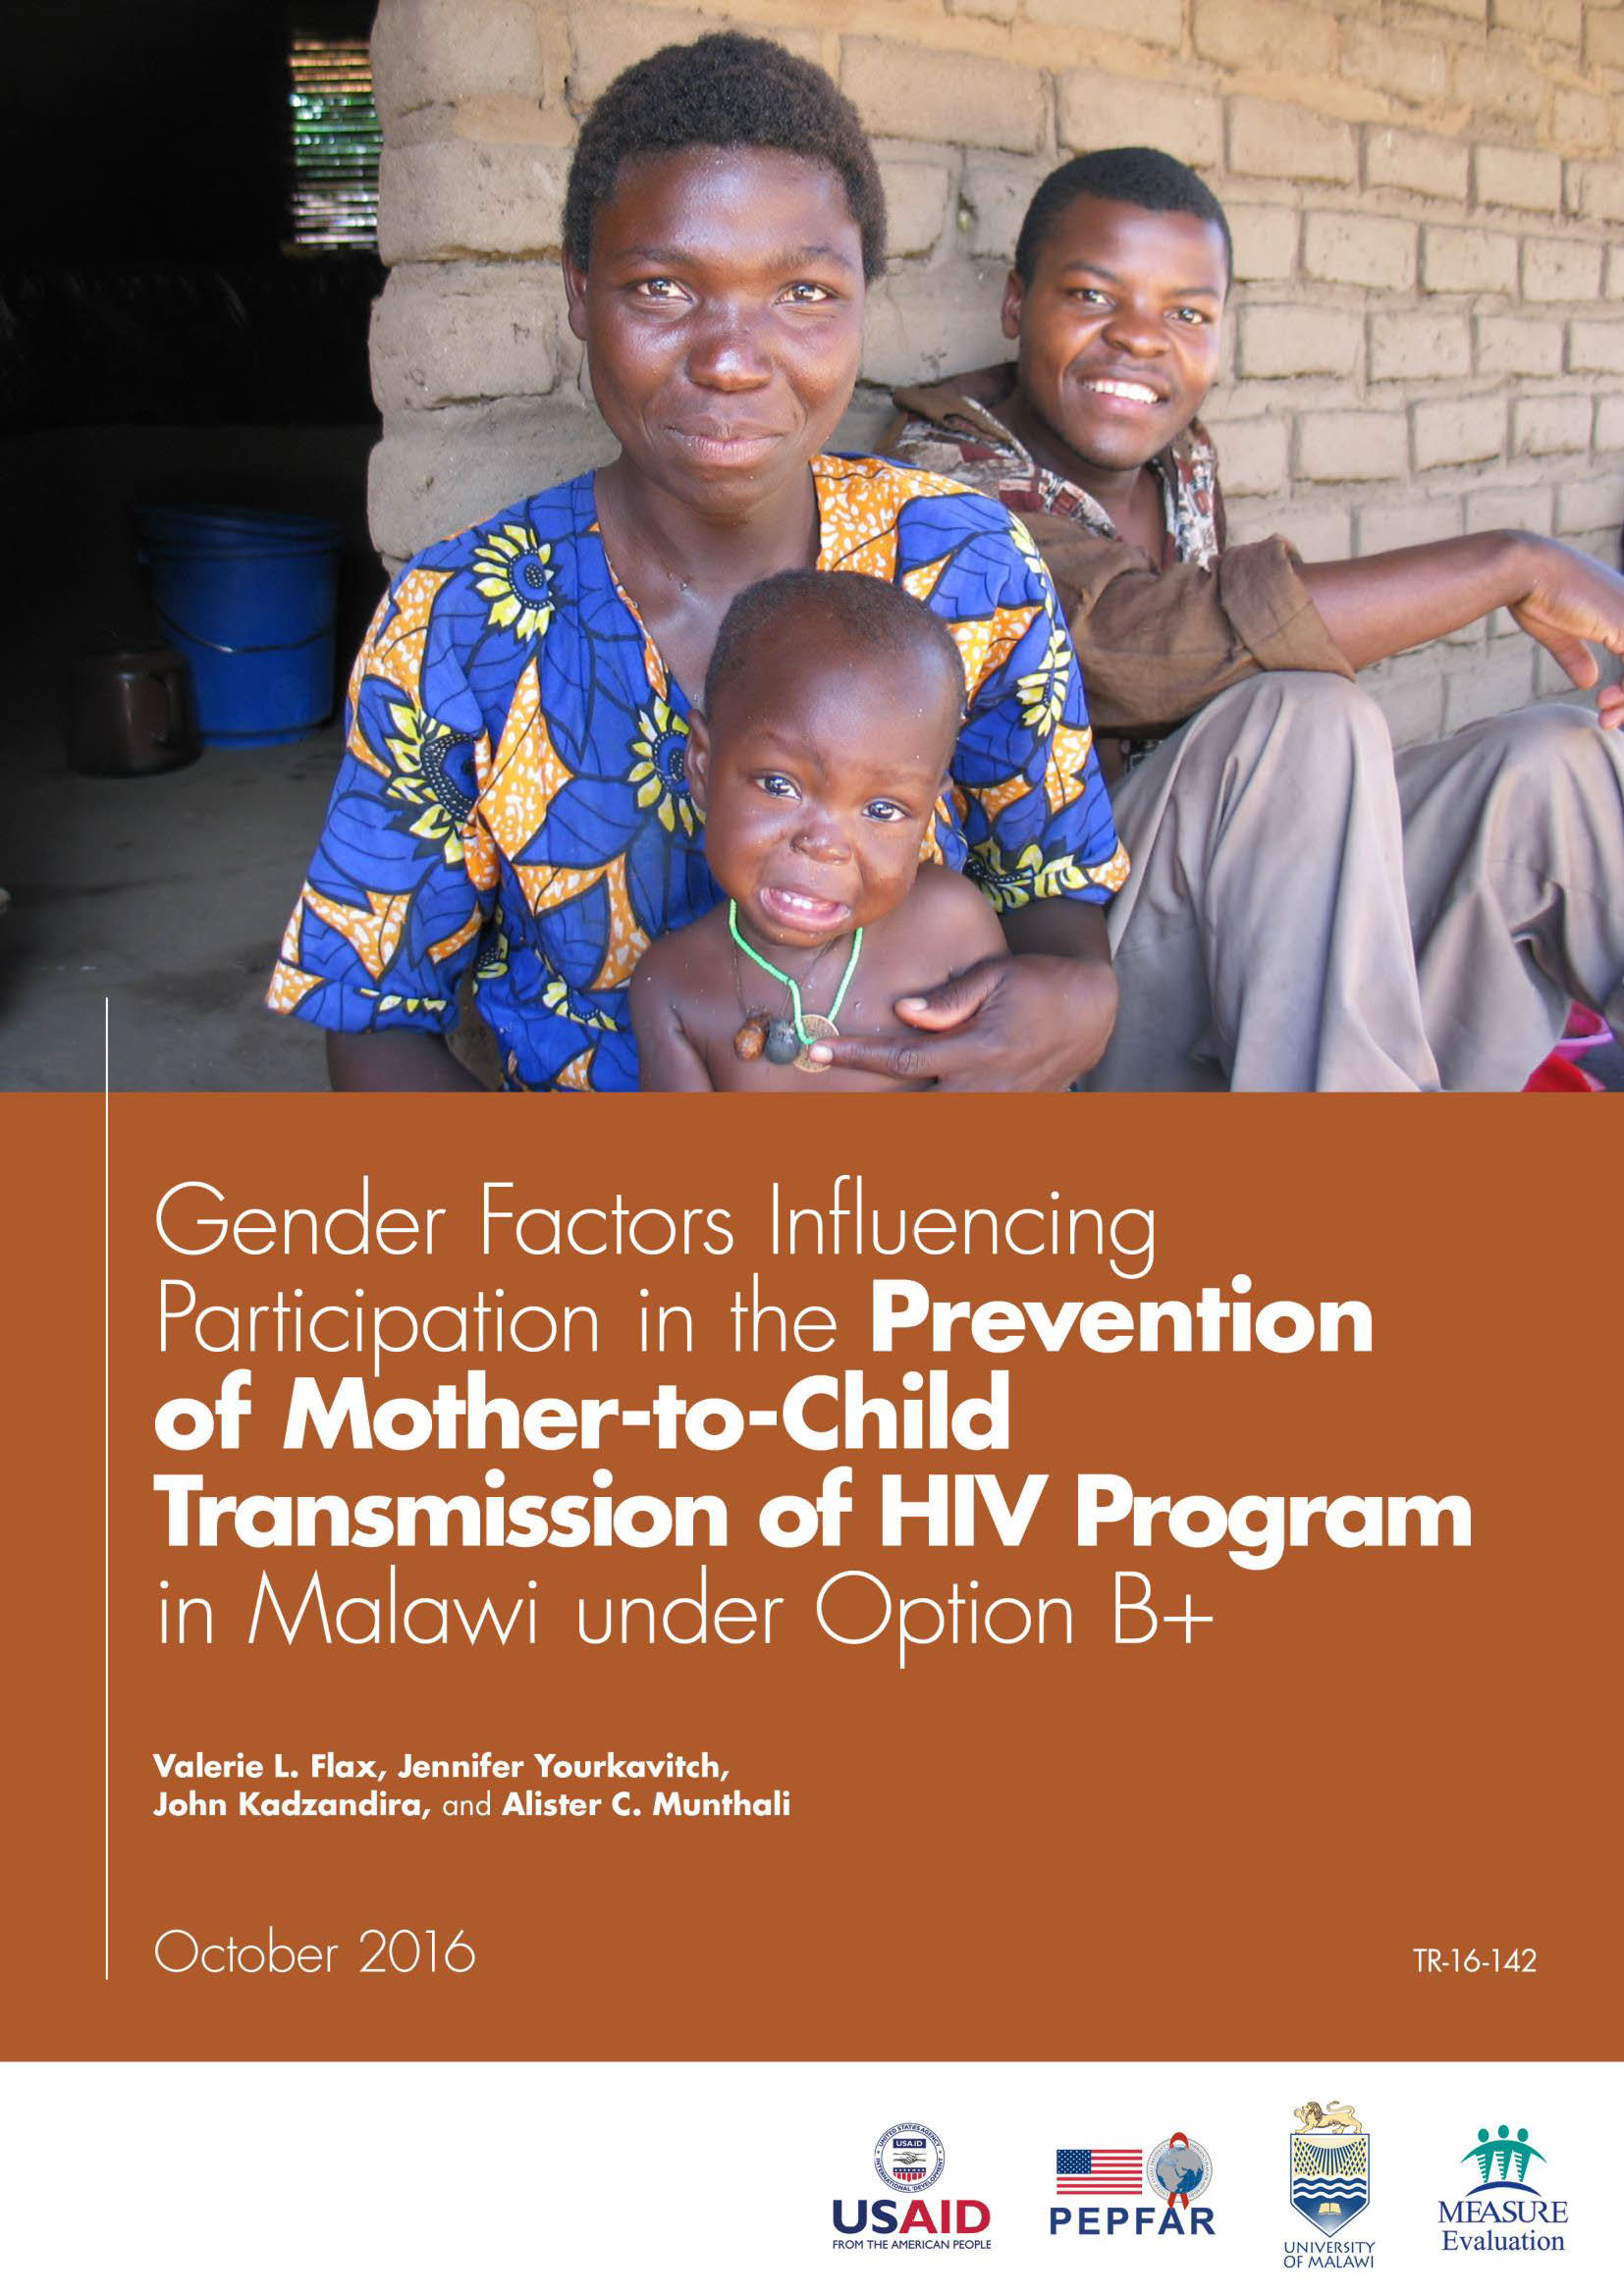 Gender Factors Influencing Participation in the Prevention of Mother-to-Child Transmission of HIV Program in Malawi under Option B+